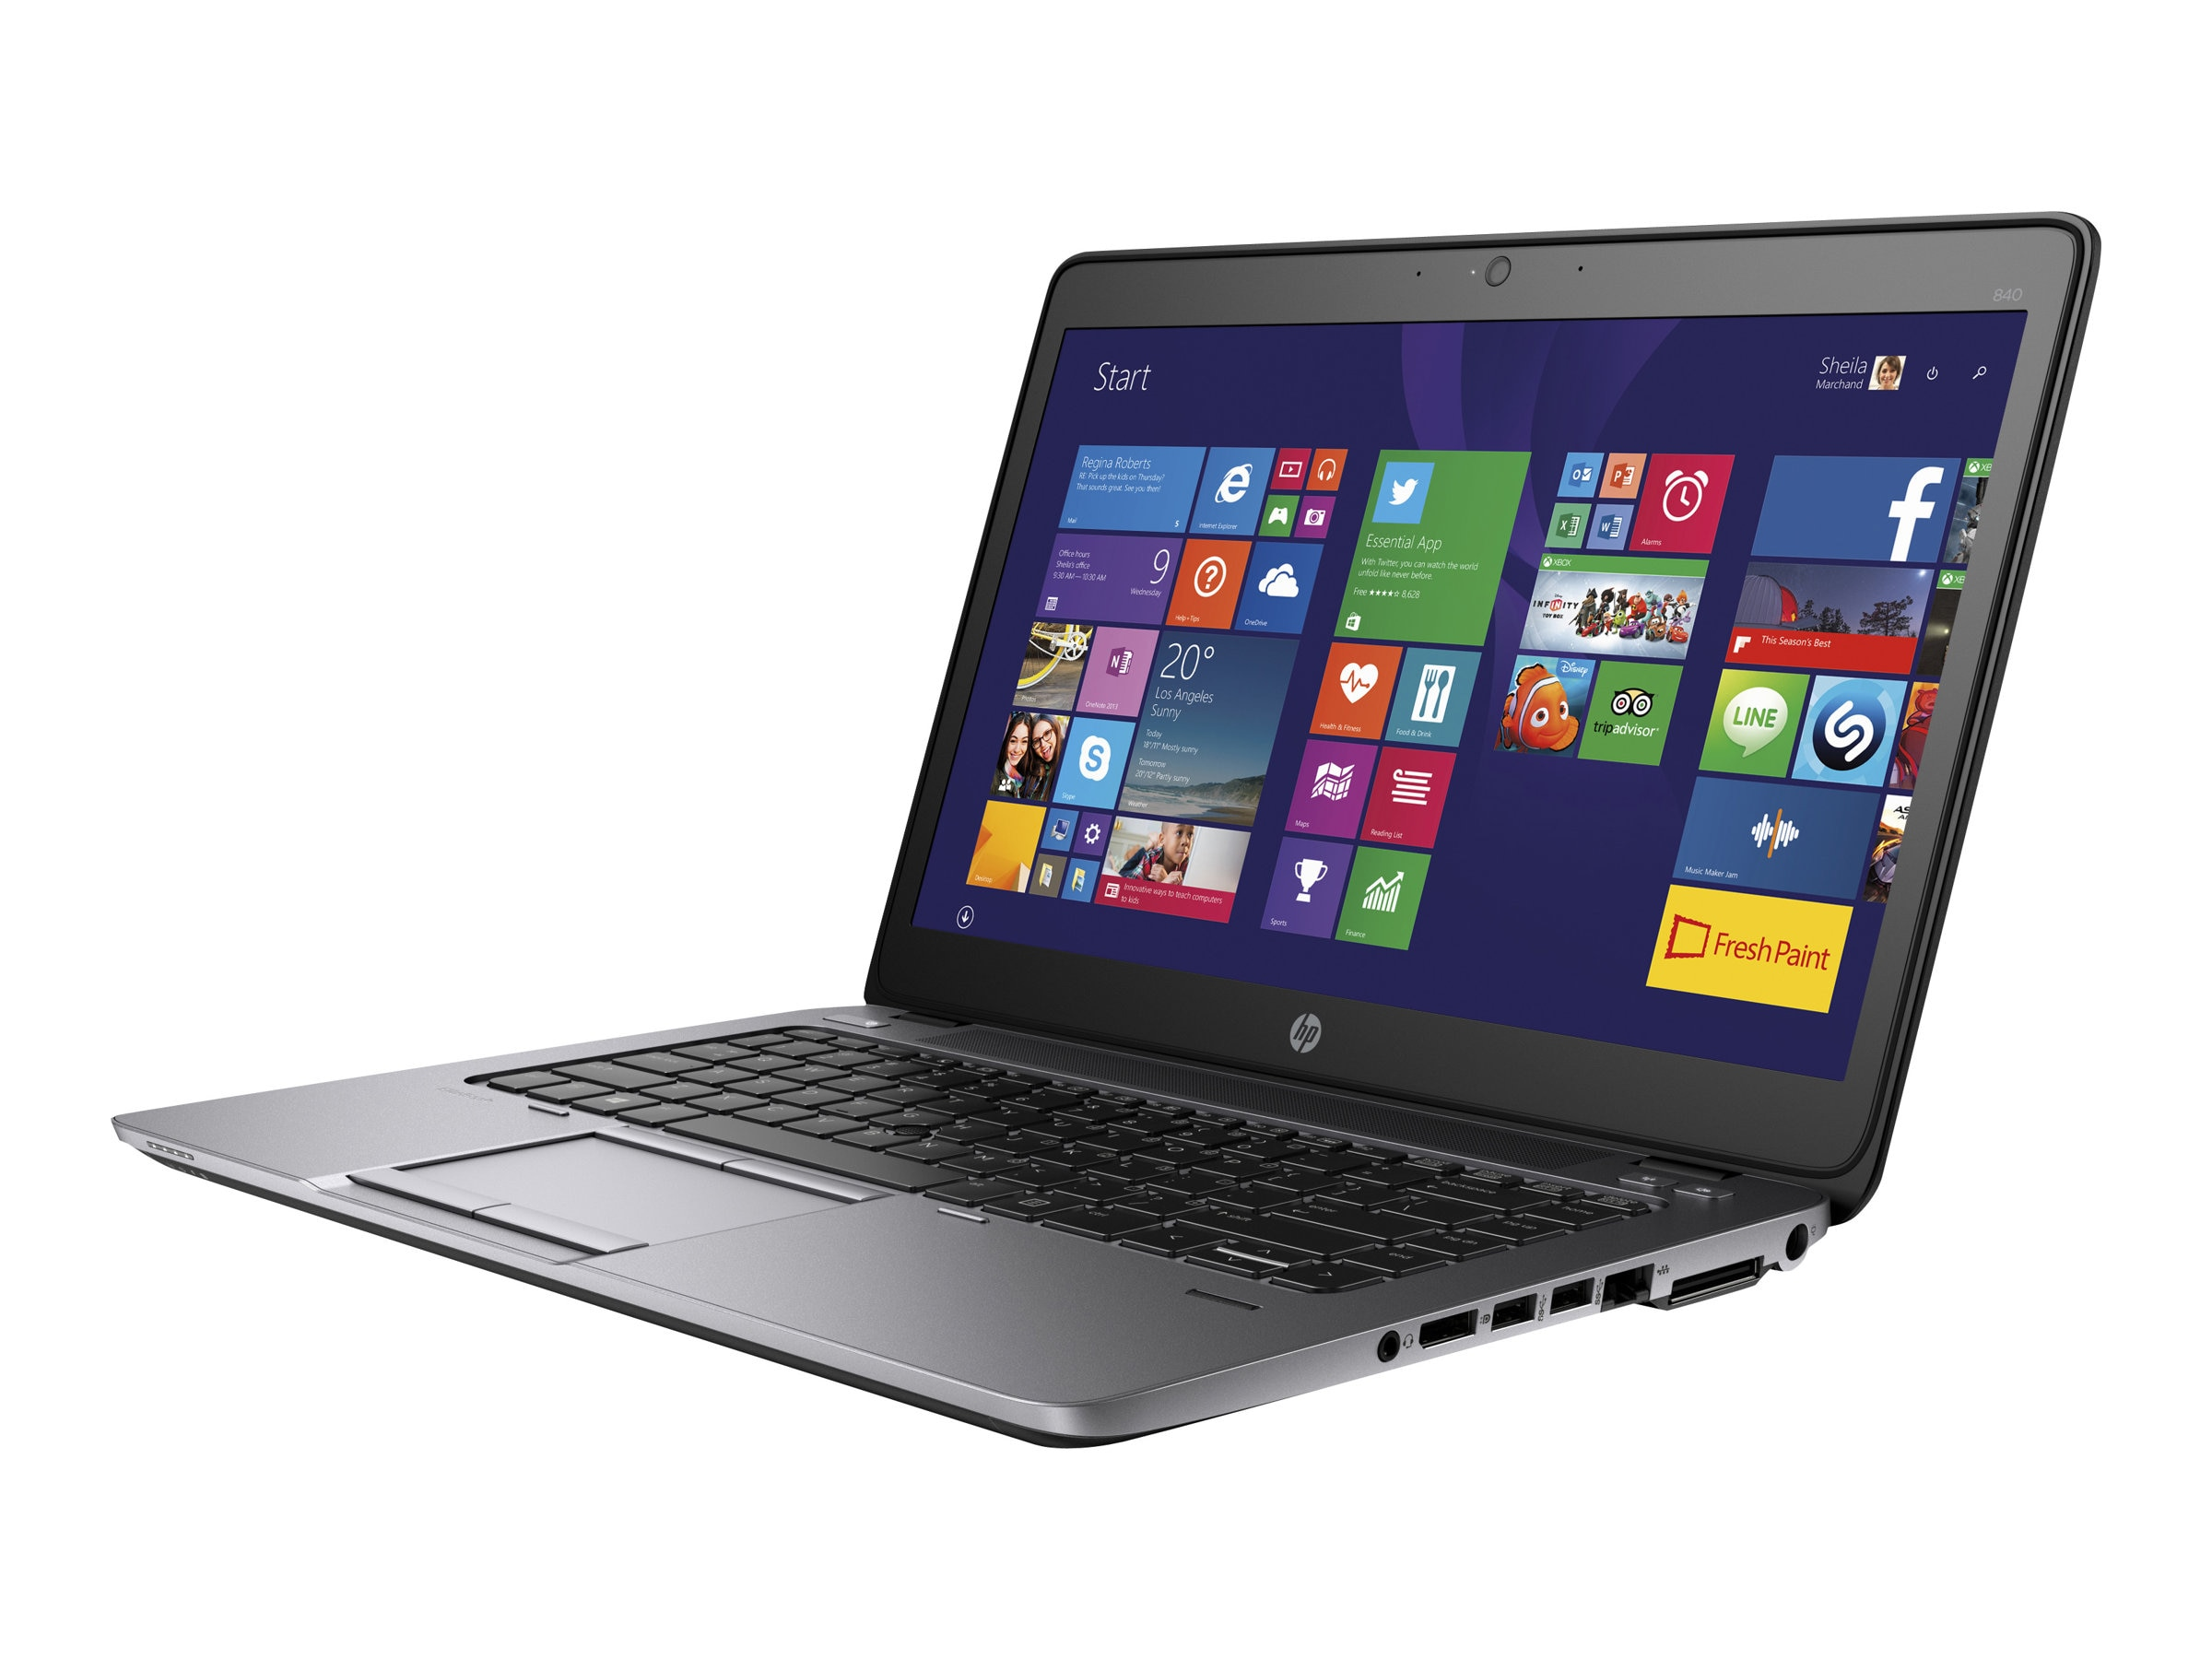 HP Smart Buy EliteBook 840 G2 2.2GHz Core i5 14in display, P0C66UT#ABA, 25234591, Notebooks